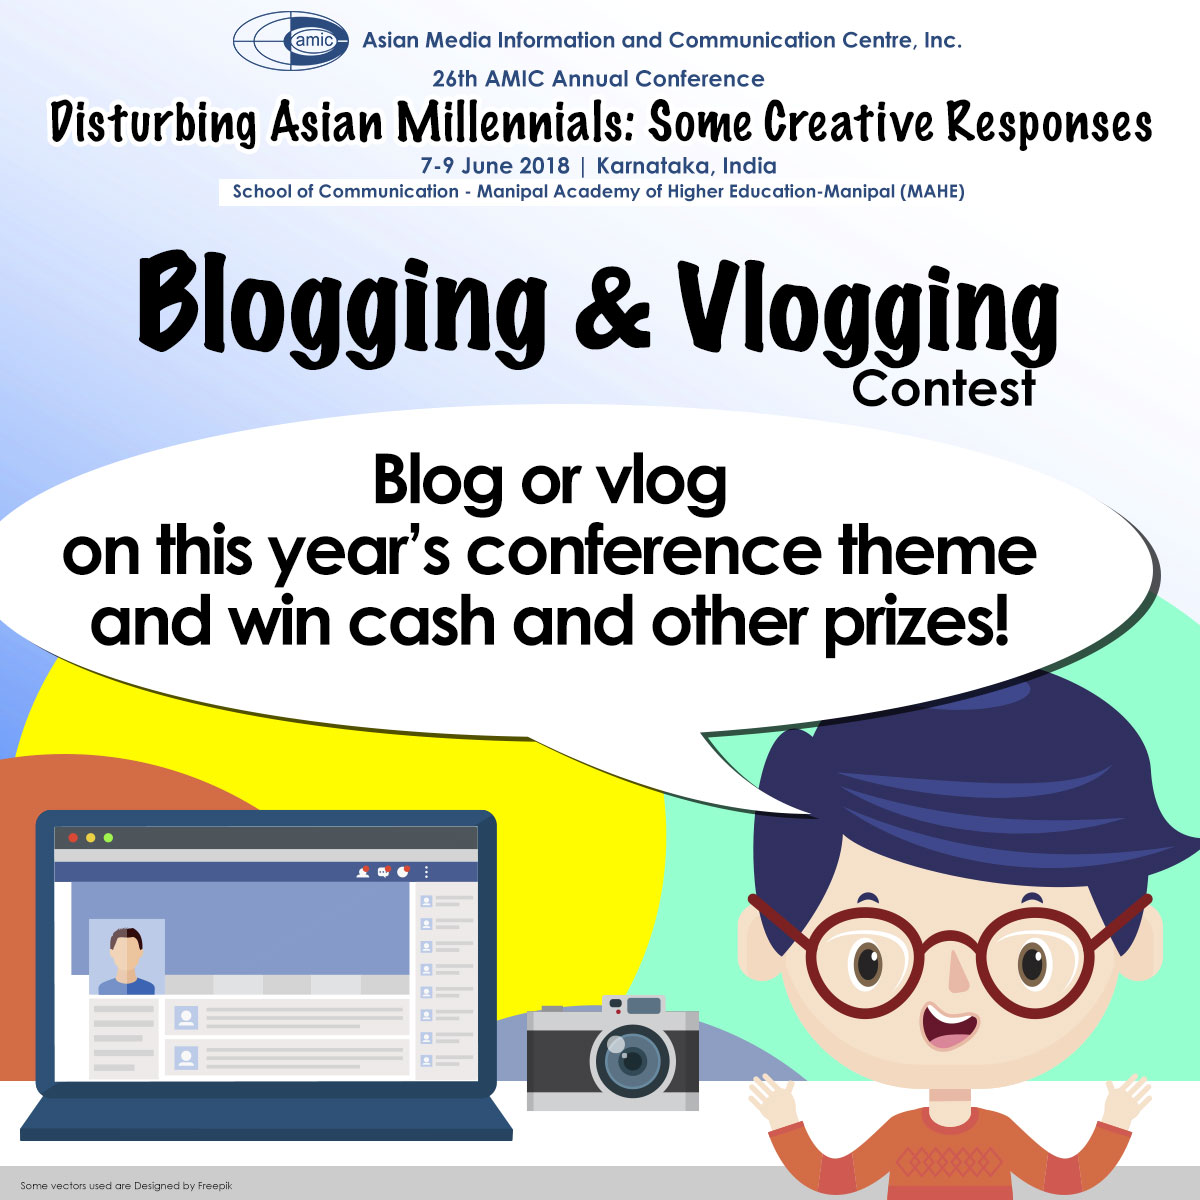 Blogging and Vlogging Contest | Asian Media Information and